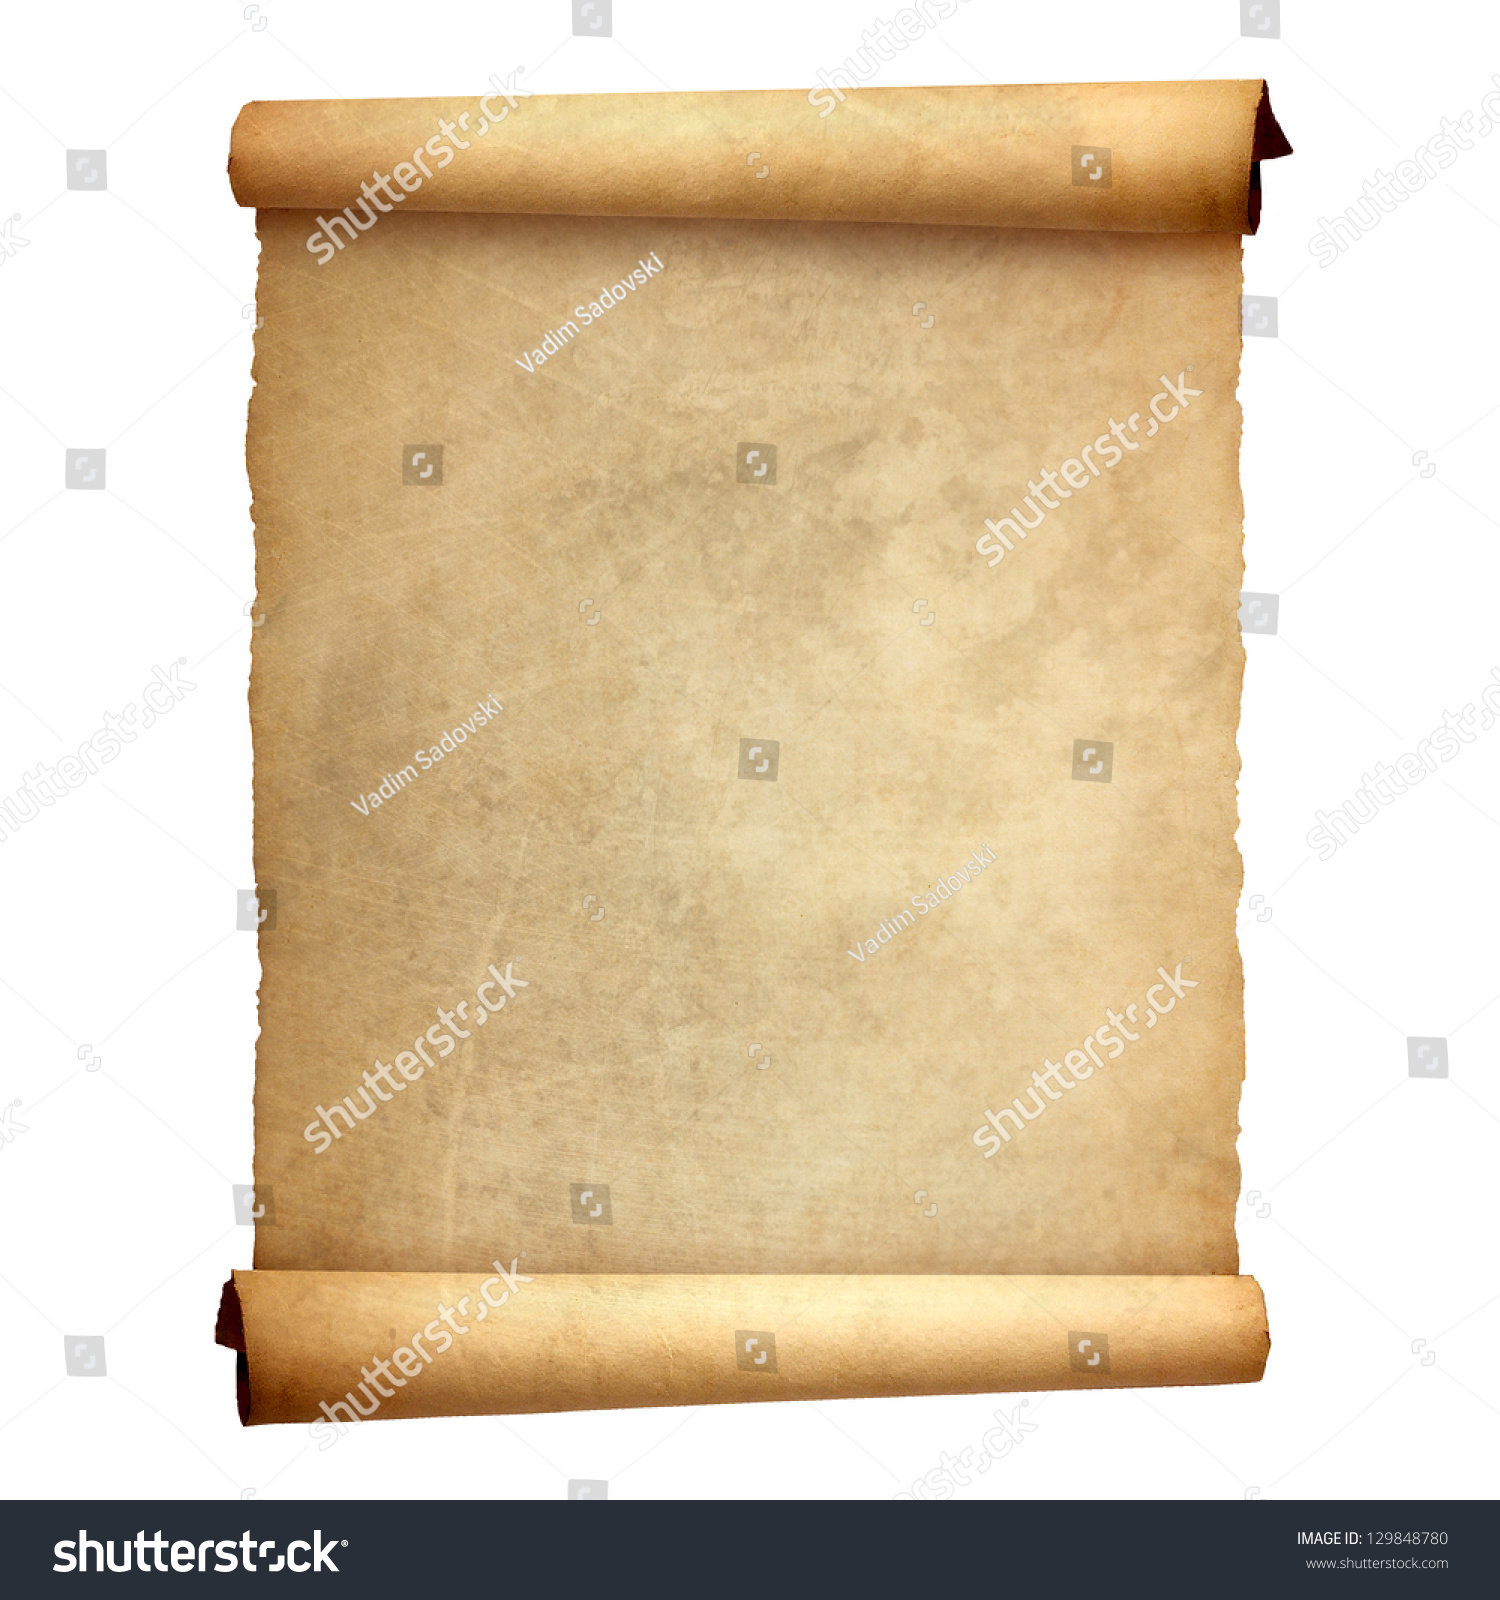 Antique Scrollimgs: Old Vintage Scroll Isolated On White Stock Photo 129848780